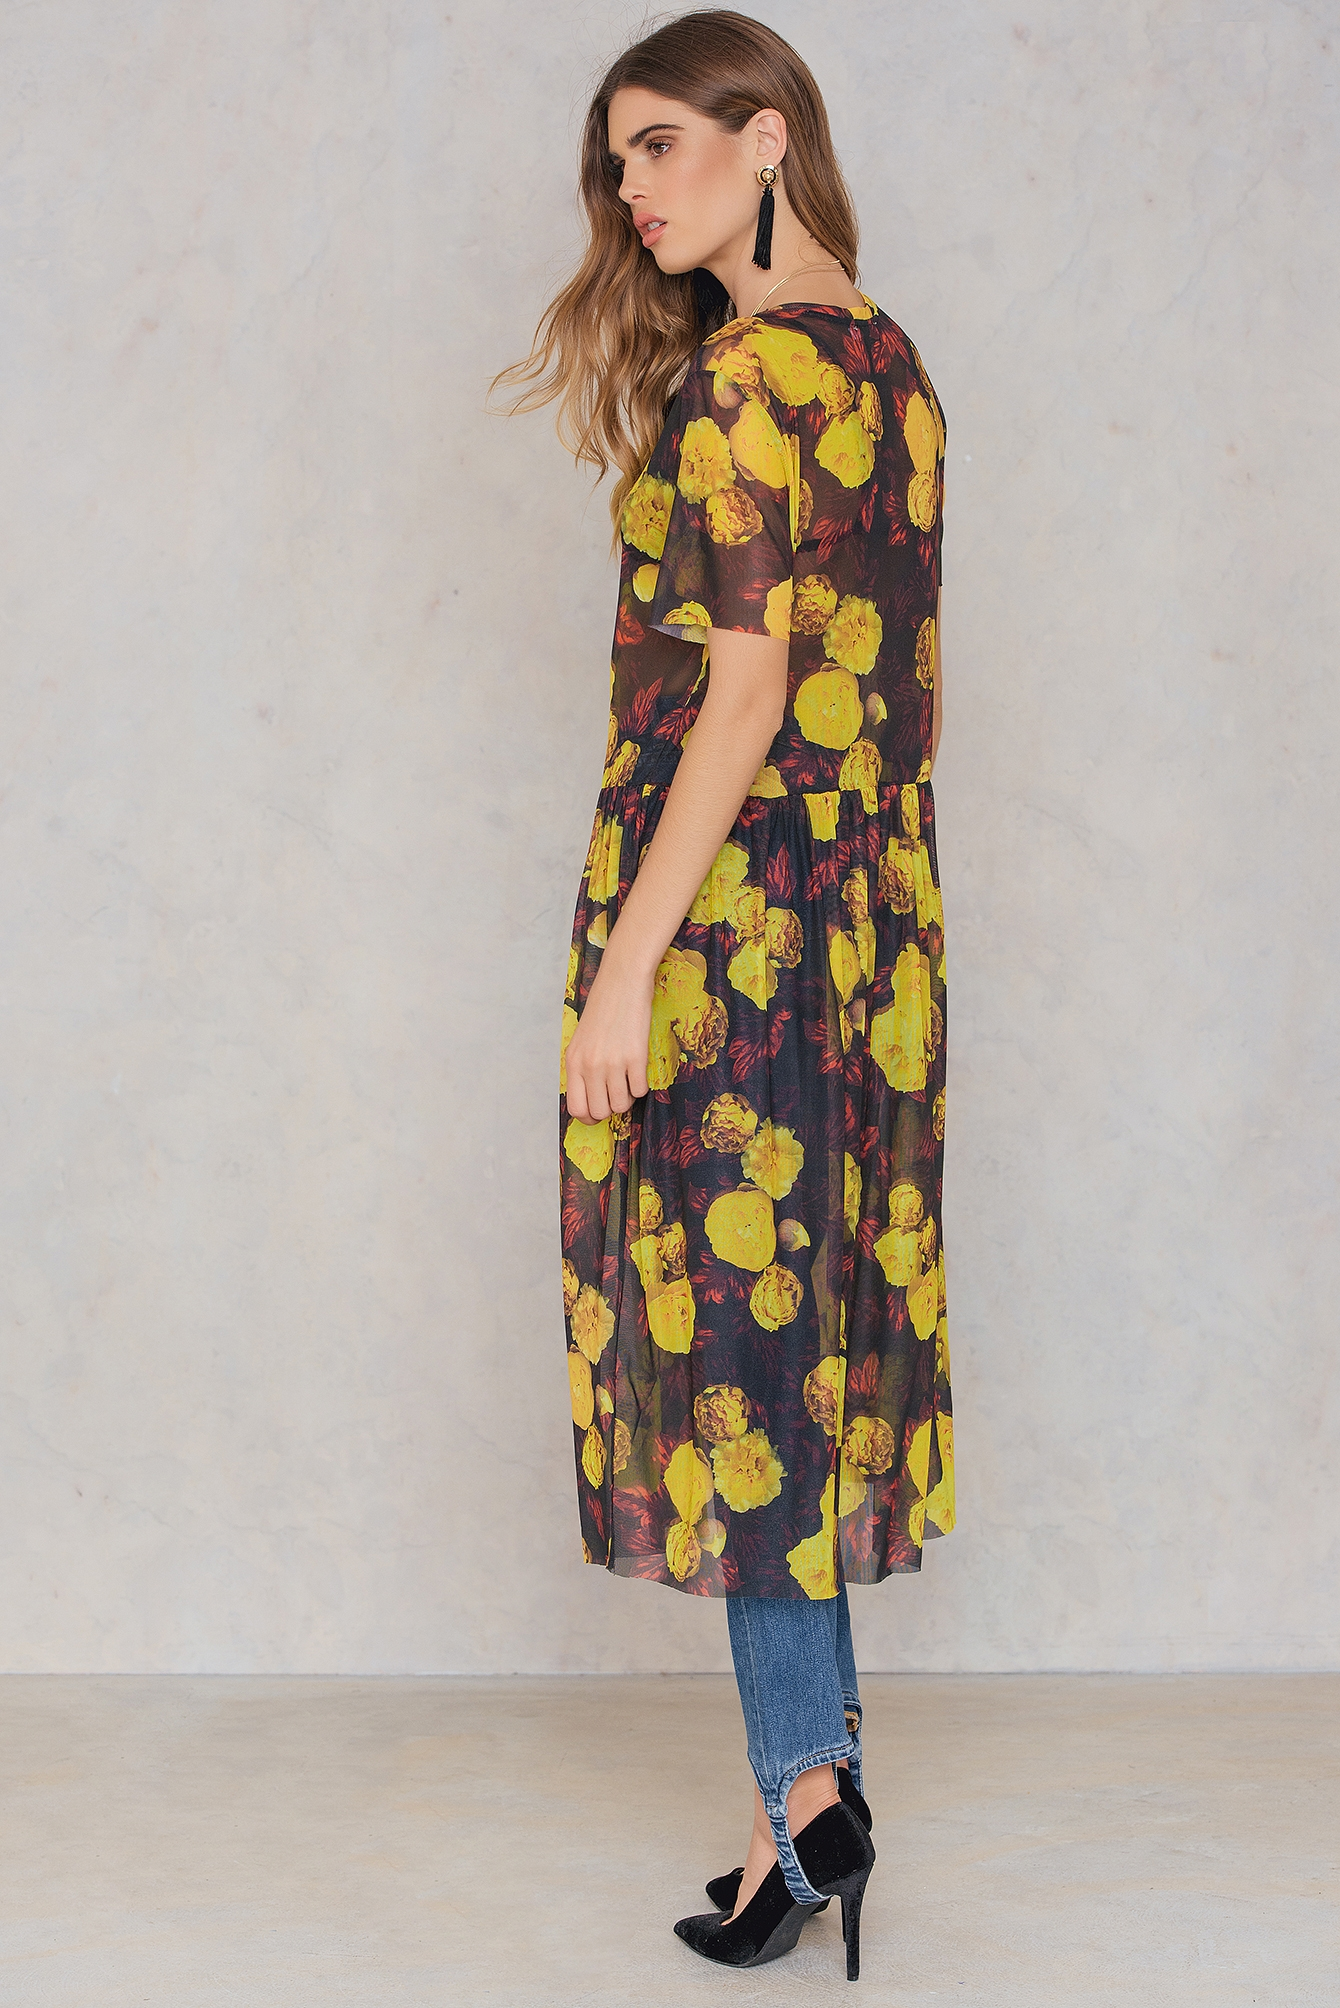 Yellow/Red Print Floral Mesh Dress